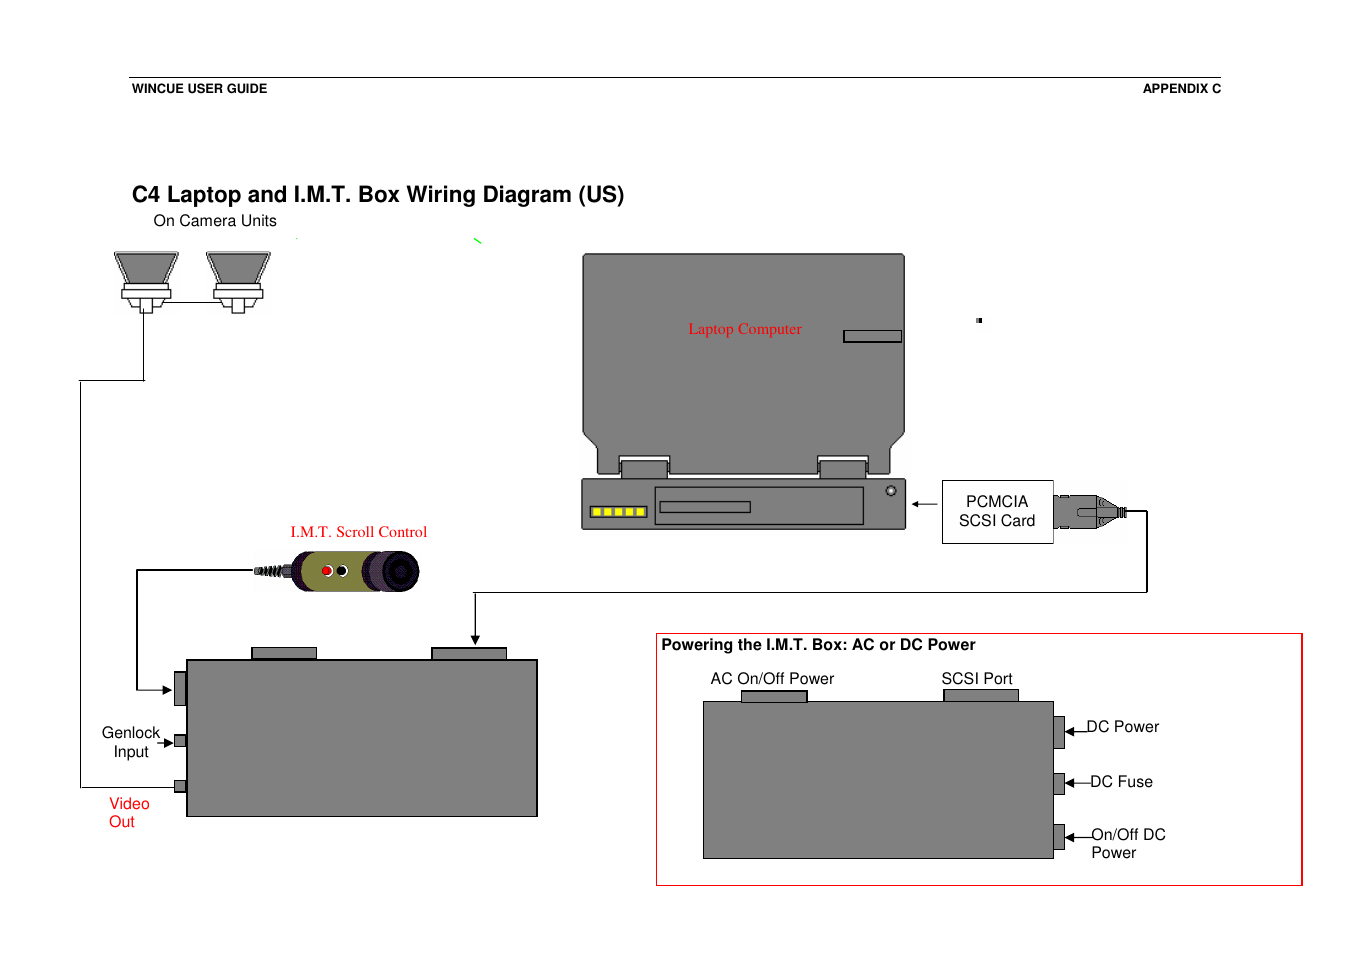 C4 laptop and i.m.t. box wiring diagram (us) | Autocue WINCUE User Manual |  Page 91 / 100